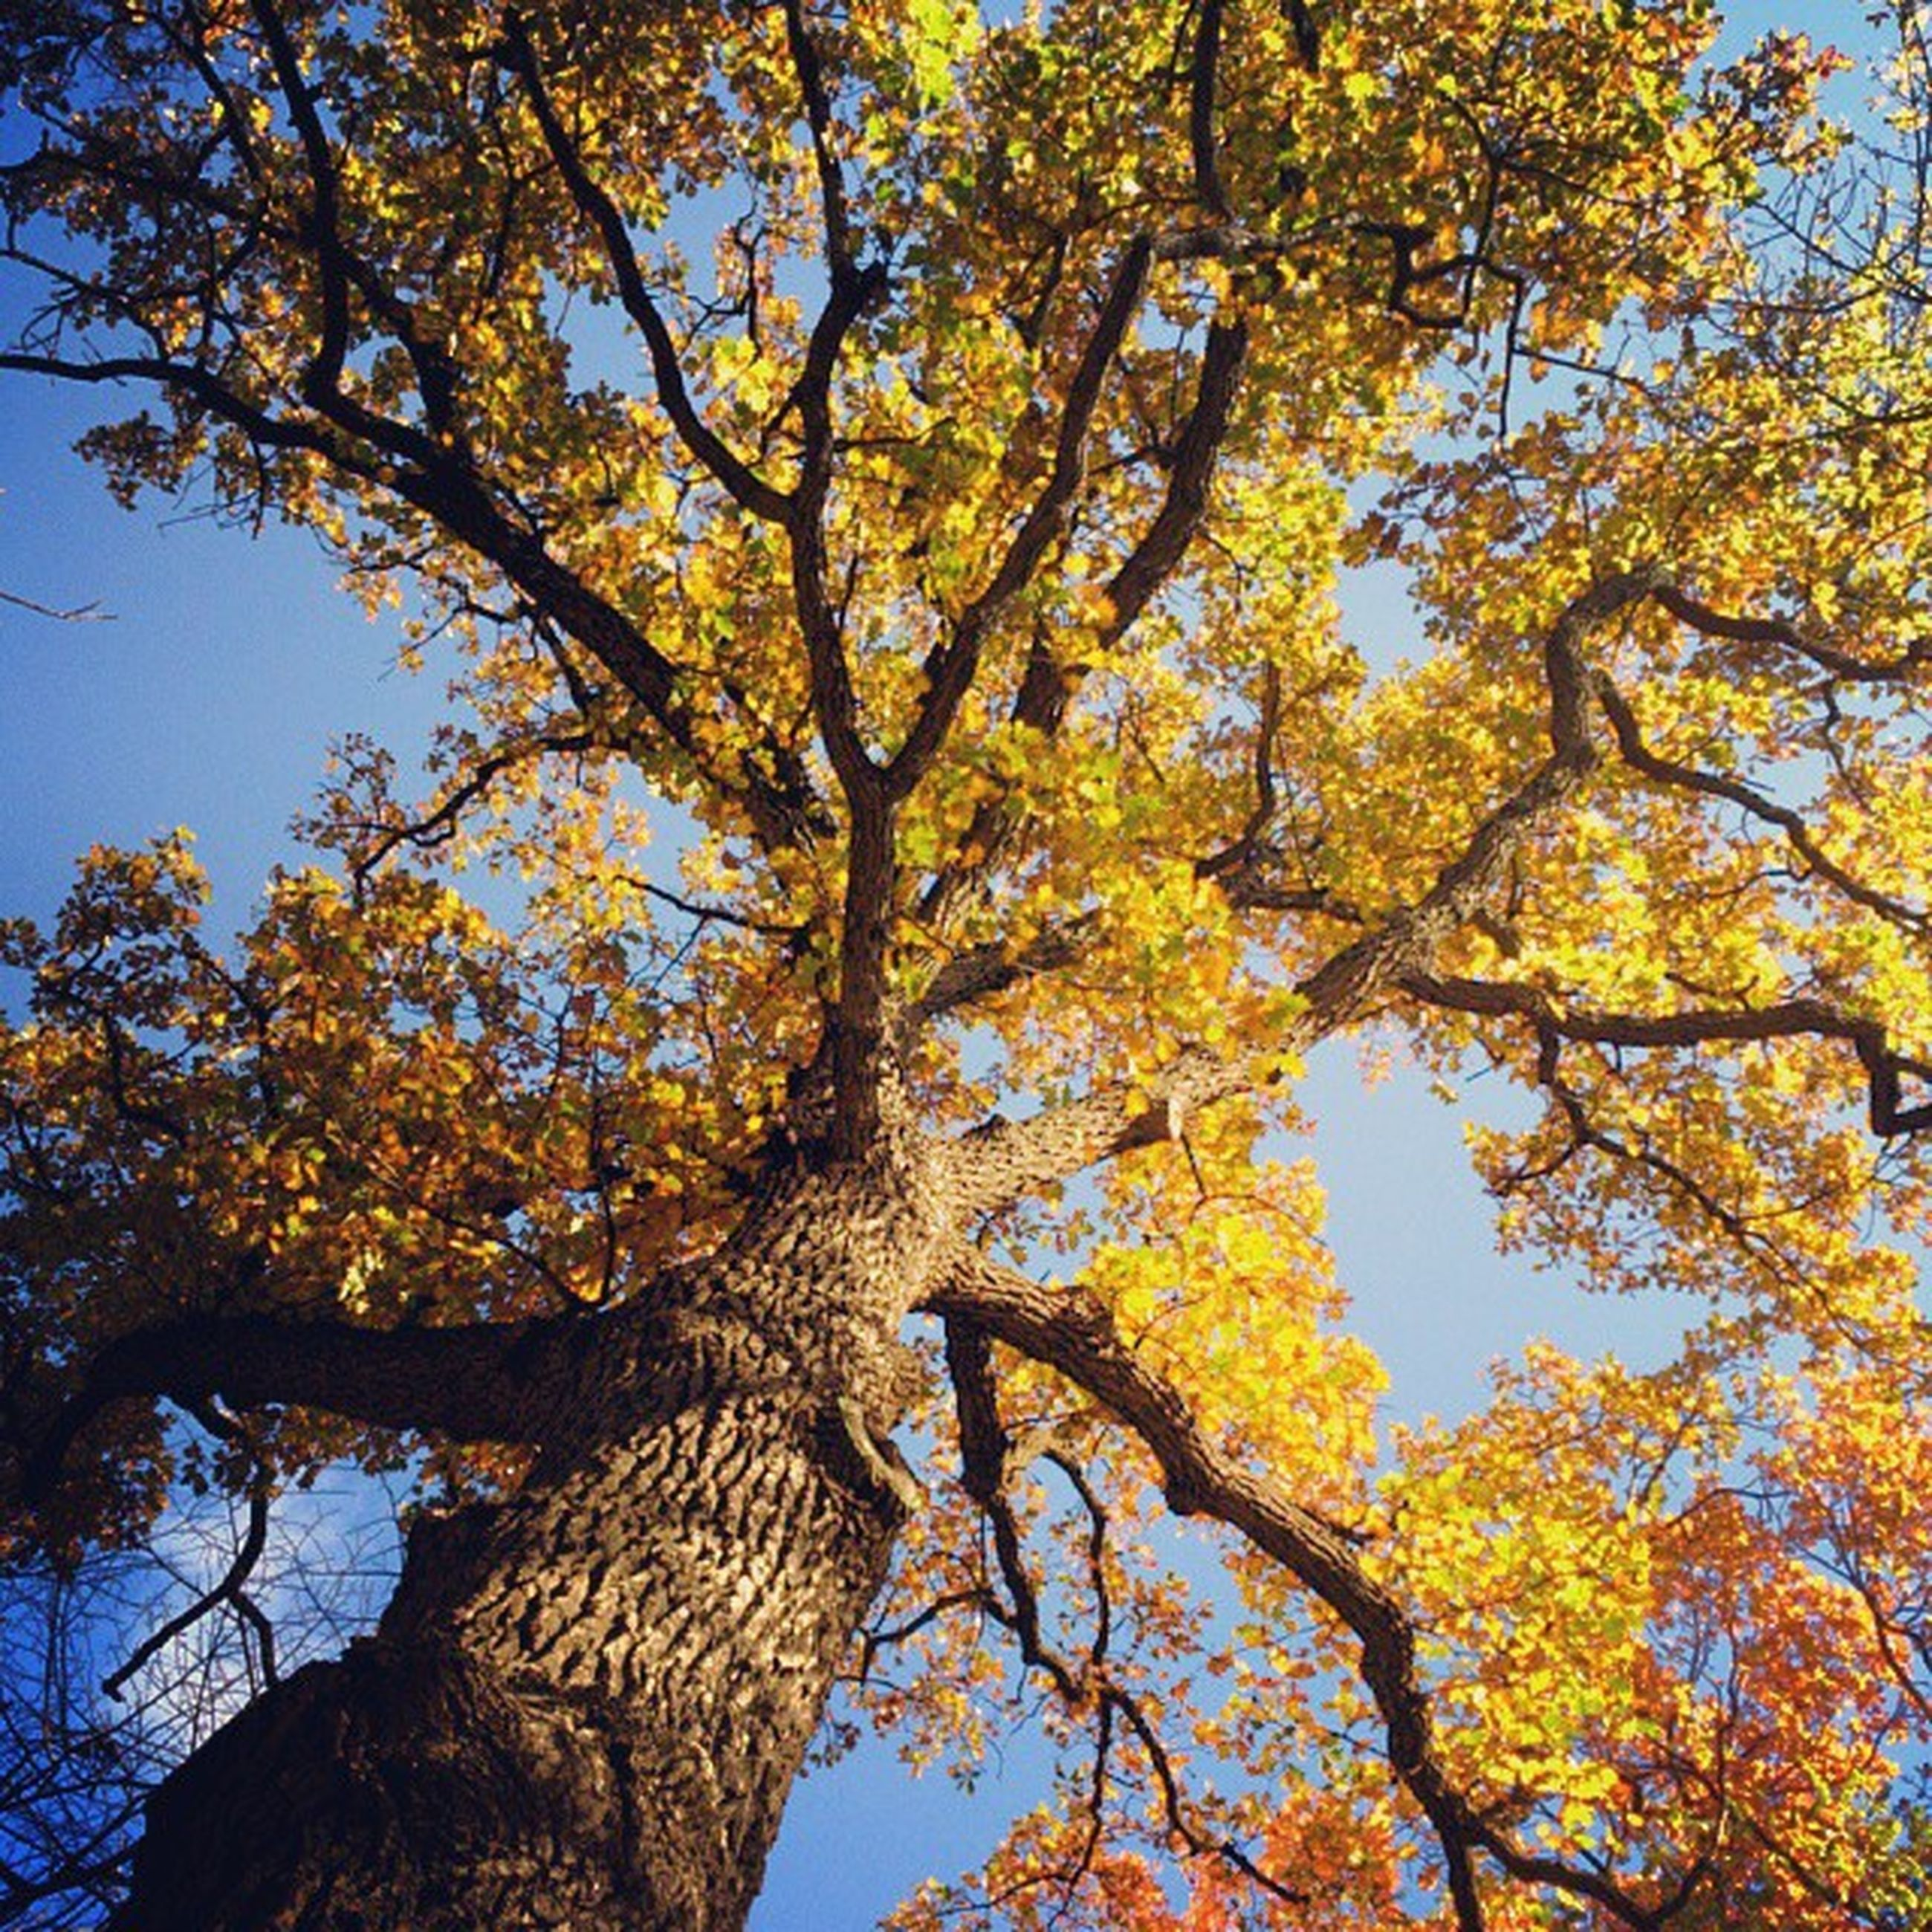 tree, low angle view, branch, autumn, growth, yellow, nature, change, beauty in nature, tranquility, clear sky, sky, leaf, scenics, season, tree trunk, sunlight, no people, day, outdoors